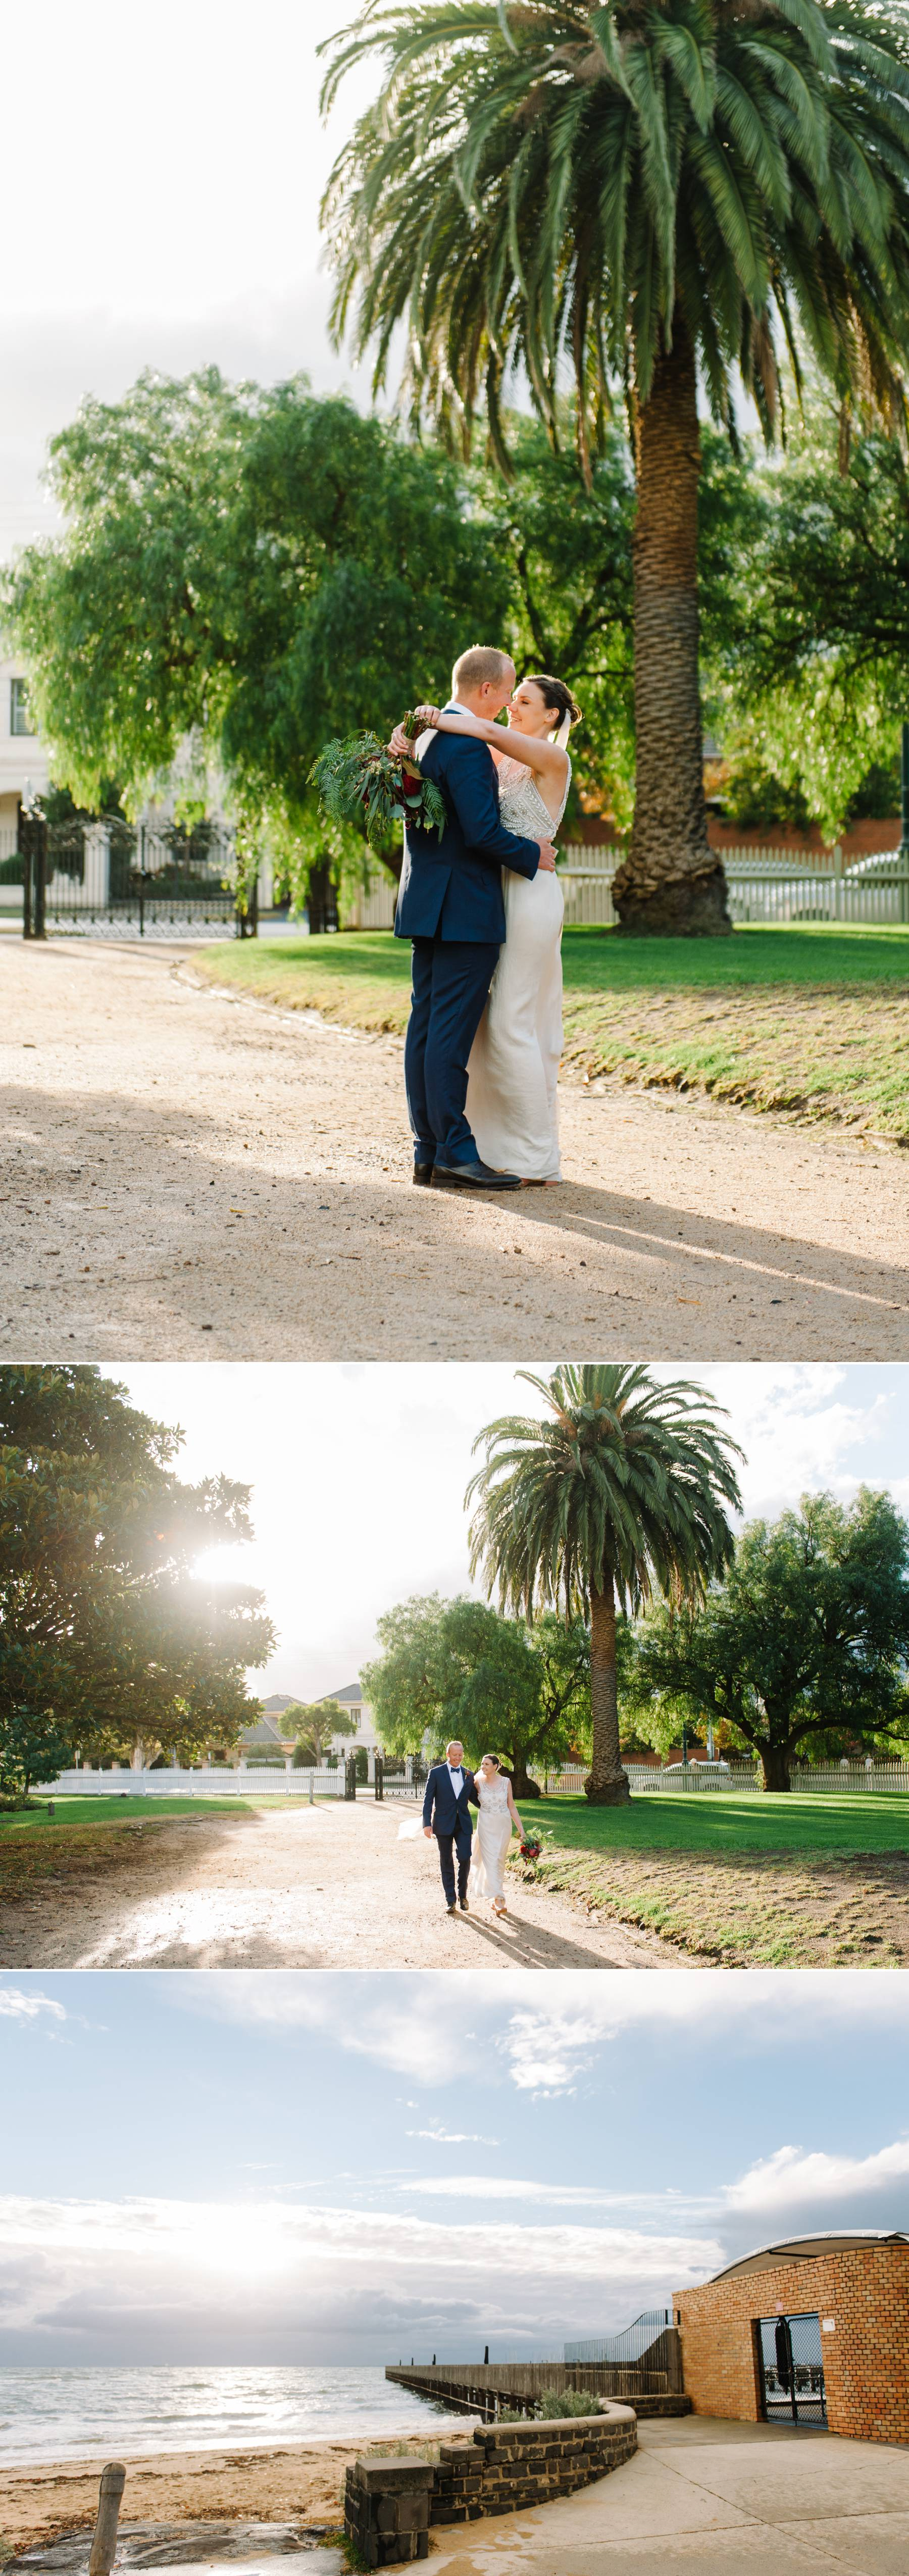 Wedding photography at Billillia Park Mansion by Mornington Peninsula photographer Michelle Pragt